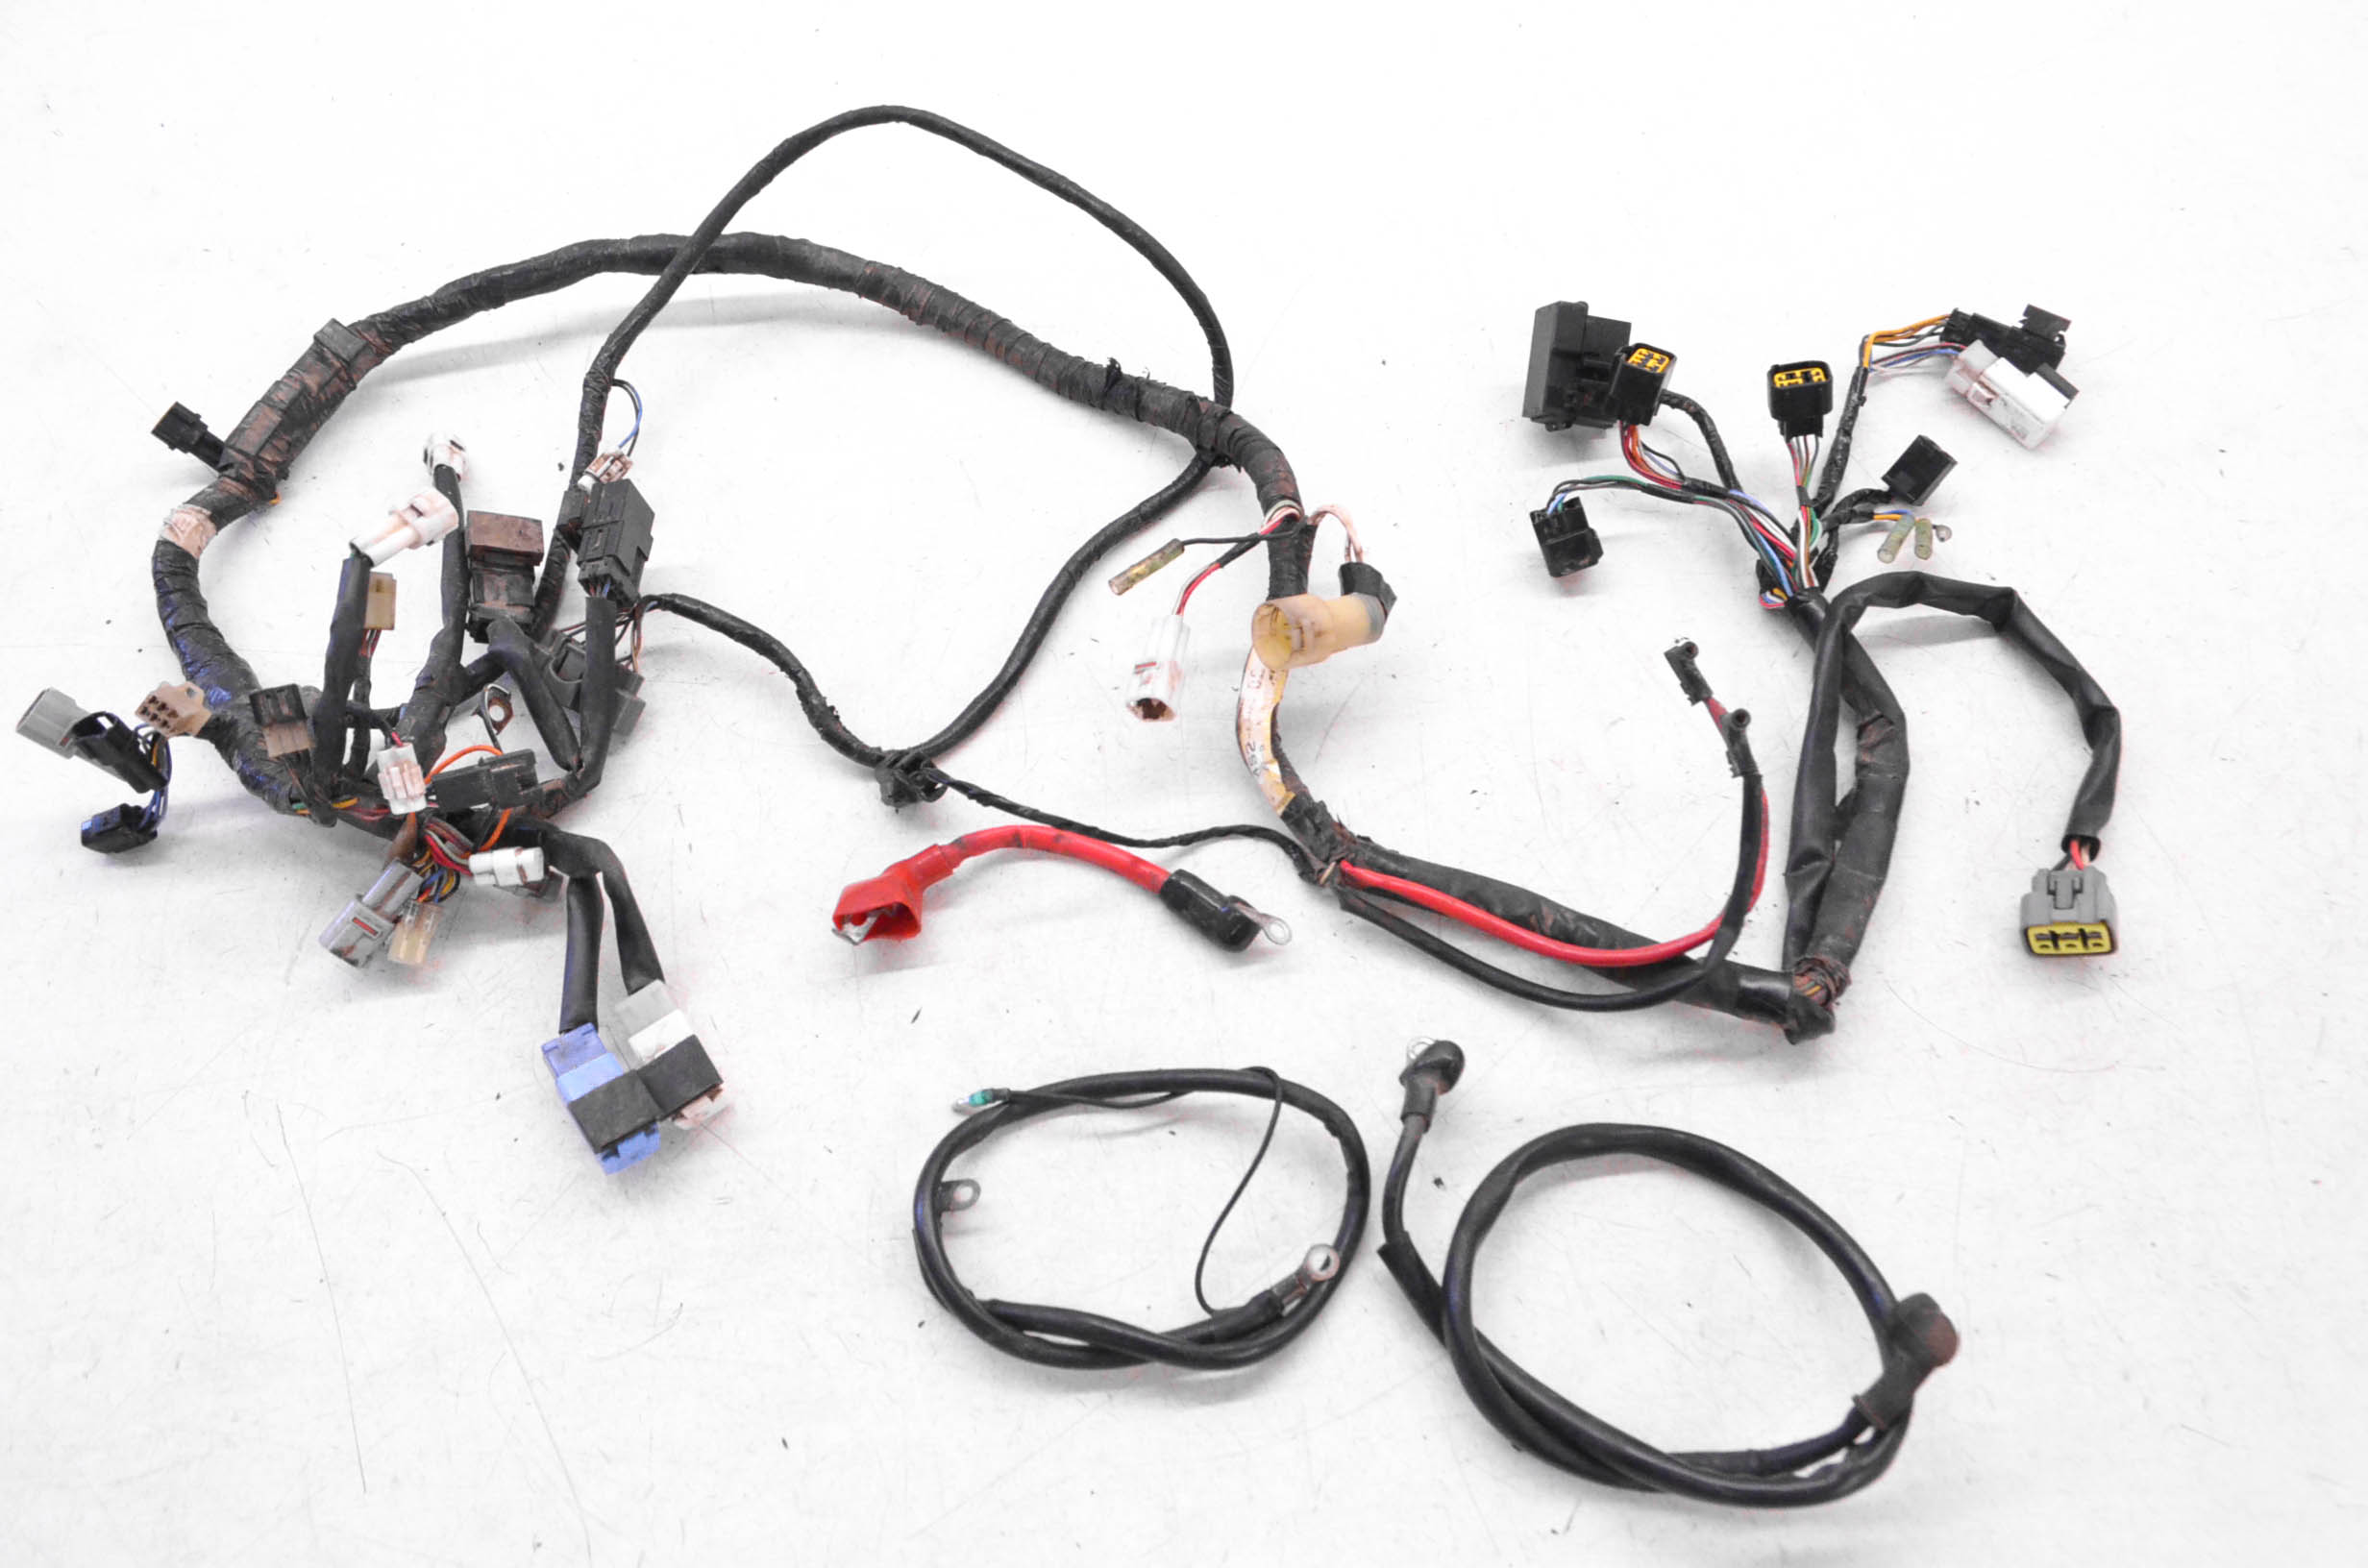 08 Yamaha Big Bear 350 Wire Harness Electrical Wiring